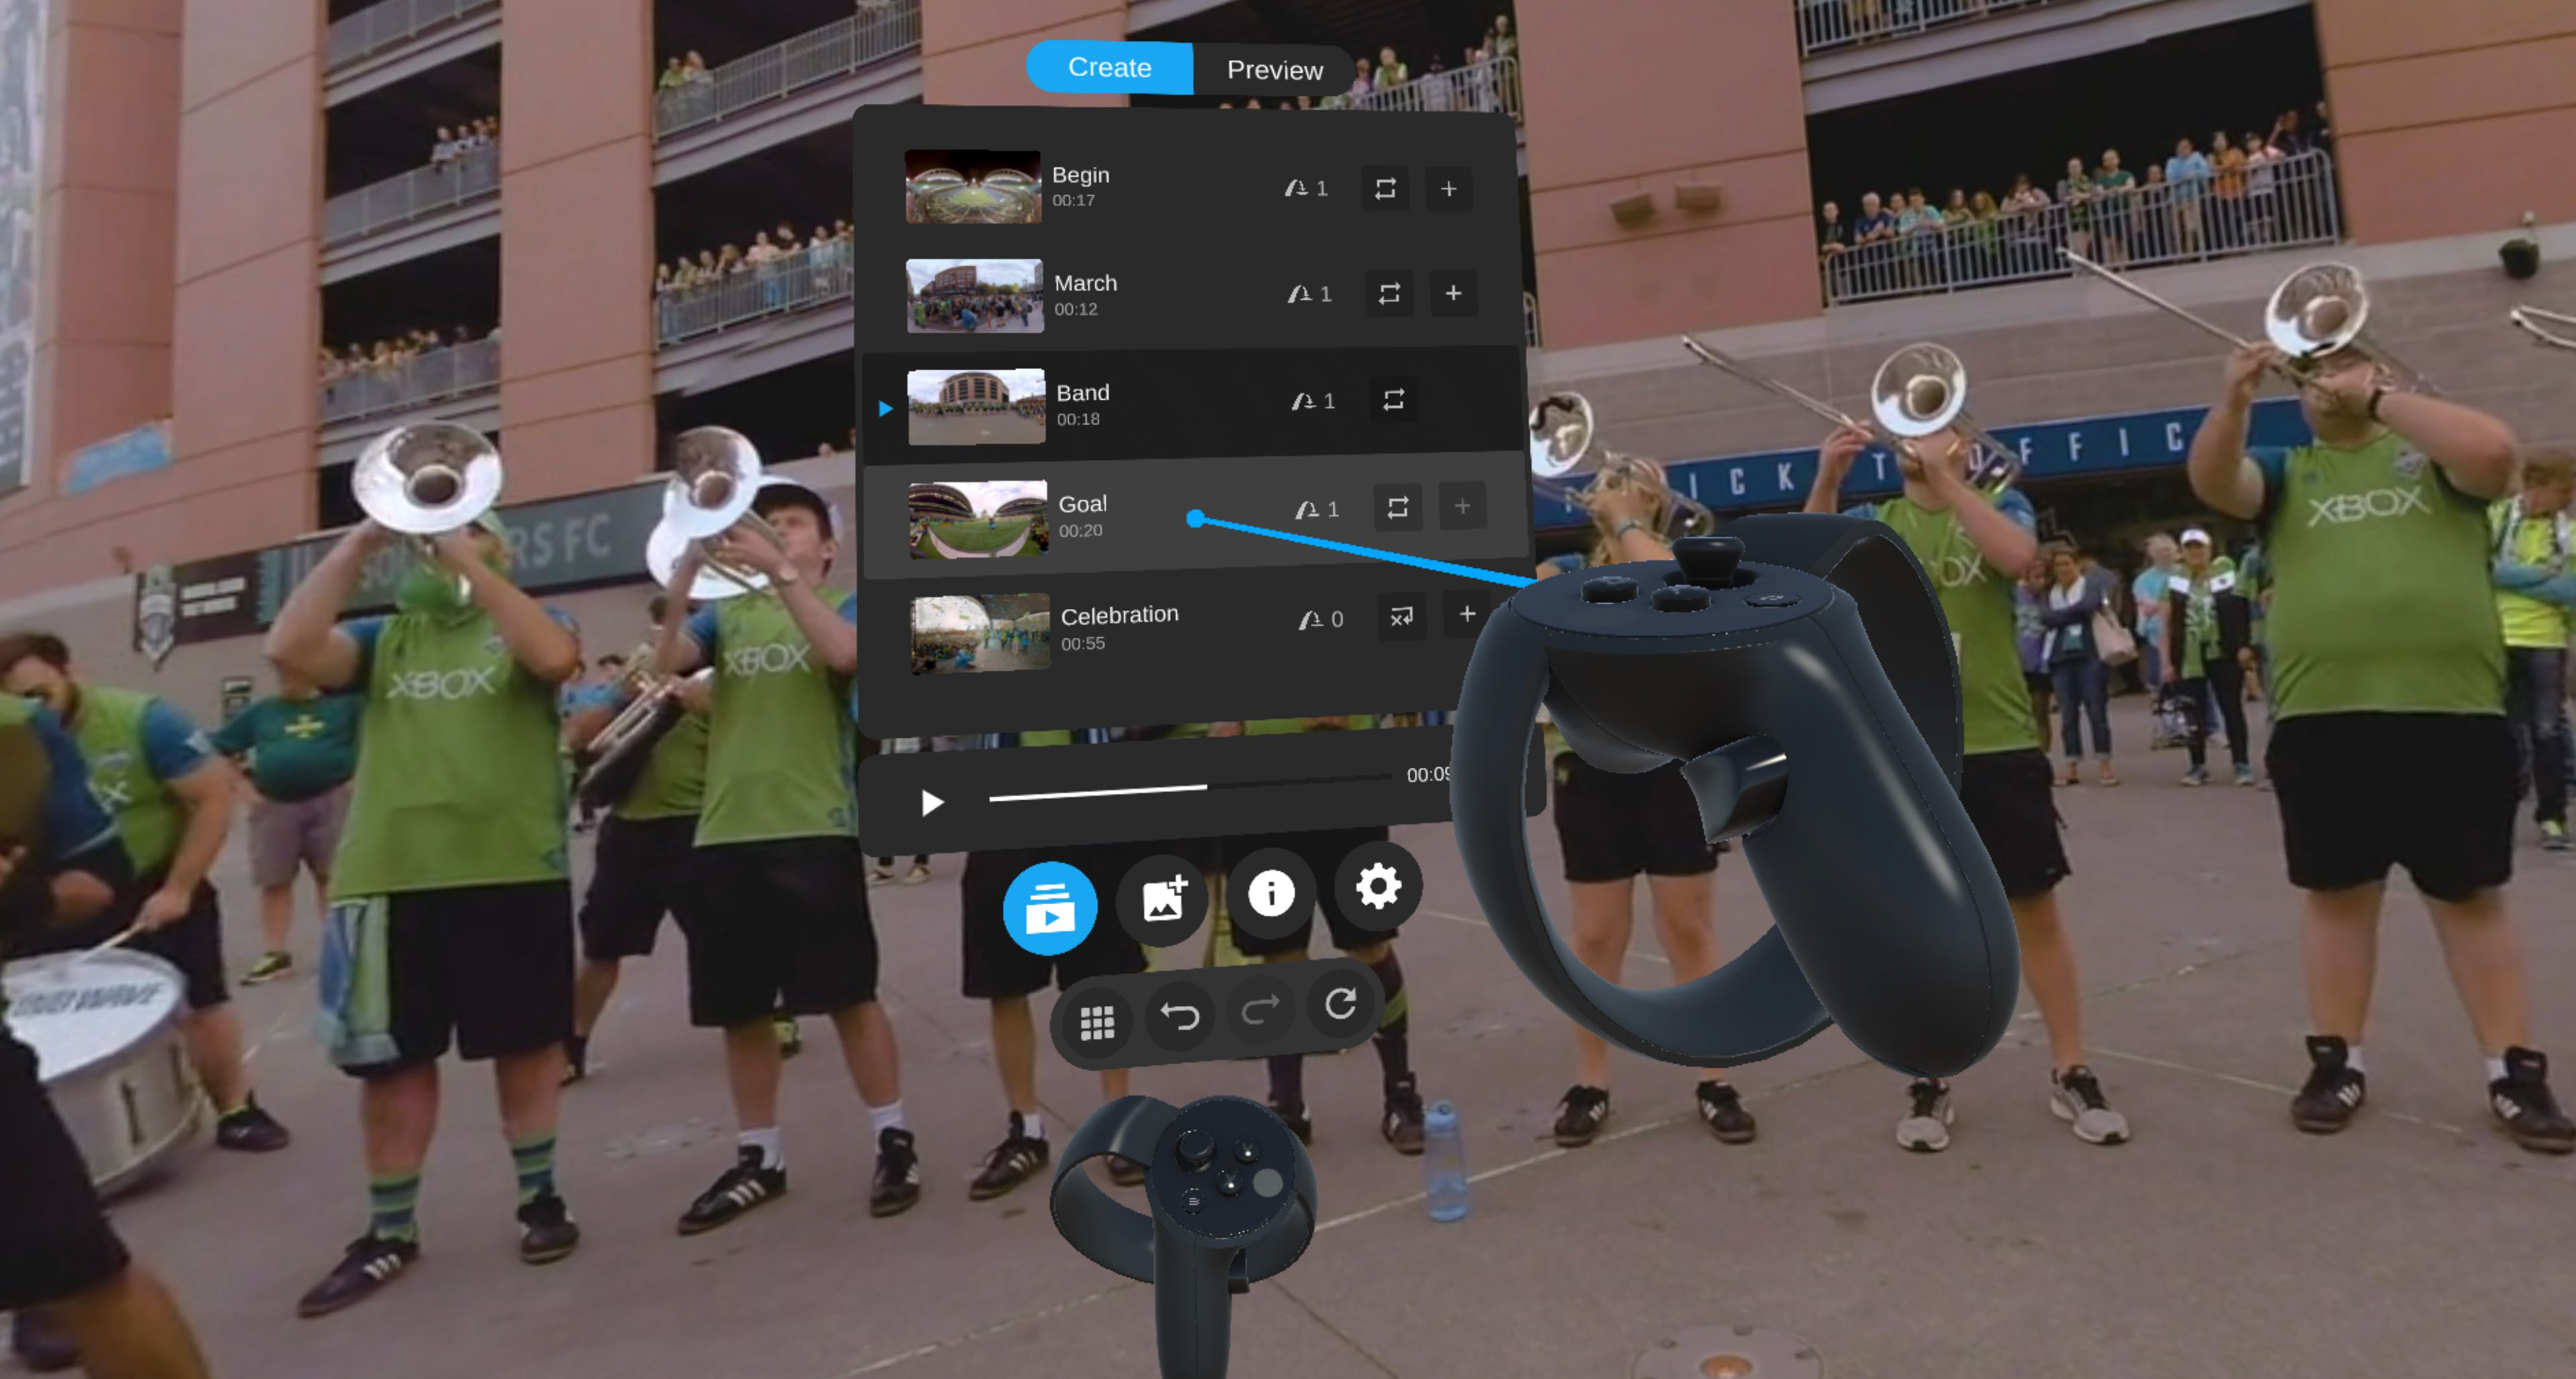 Spin Studio Adds In-headset VR Editing to Cloud-based Creation Platform